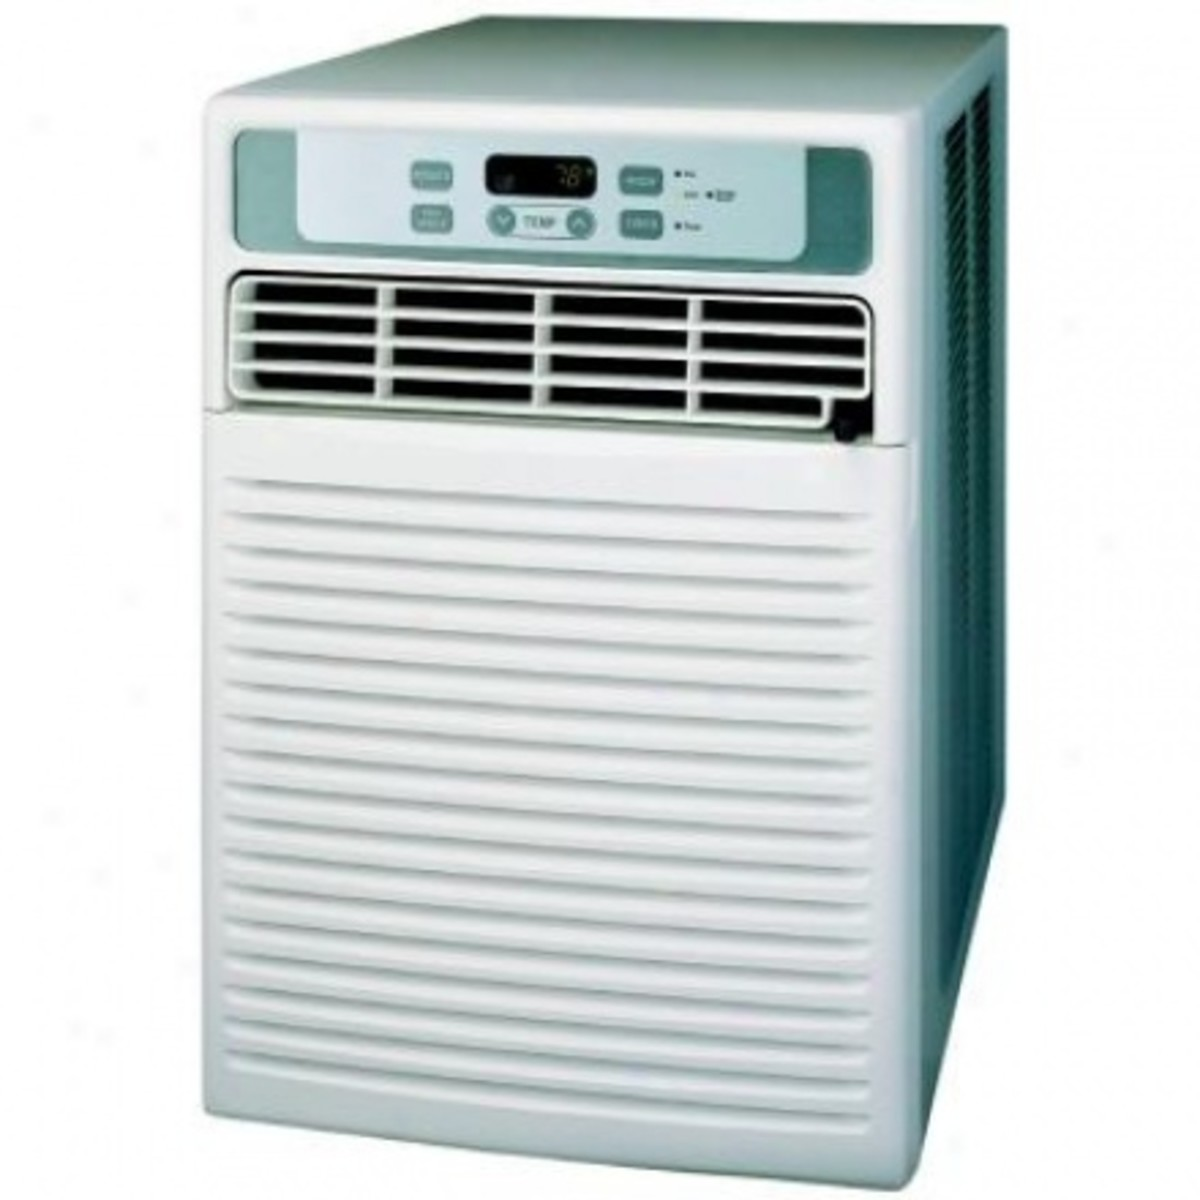 Vertical window air conditioners are now available.